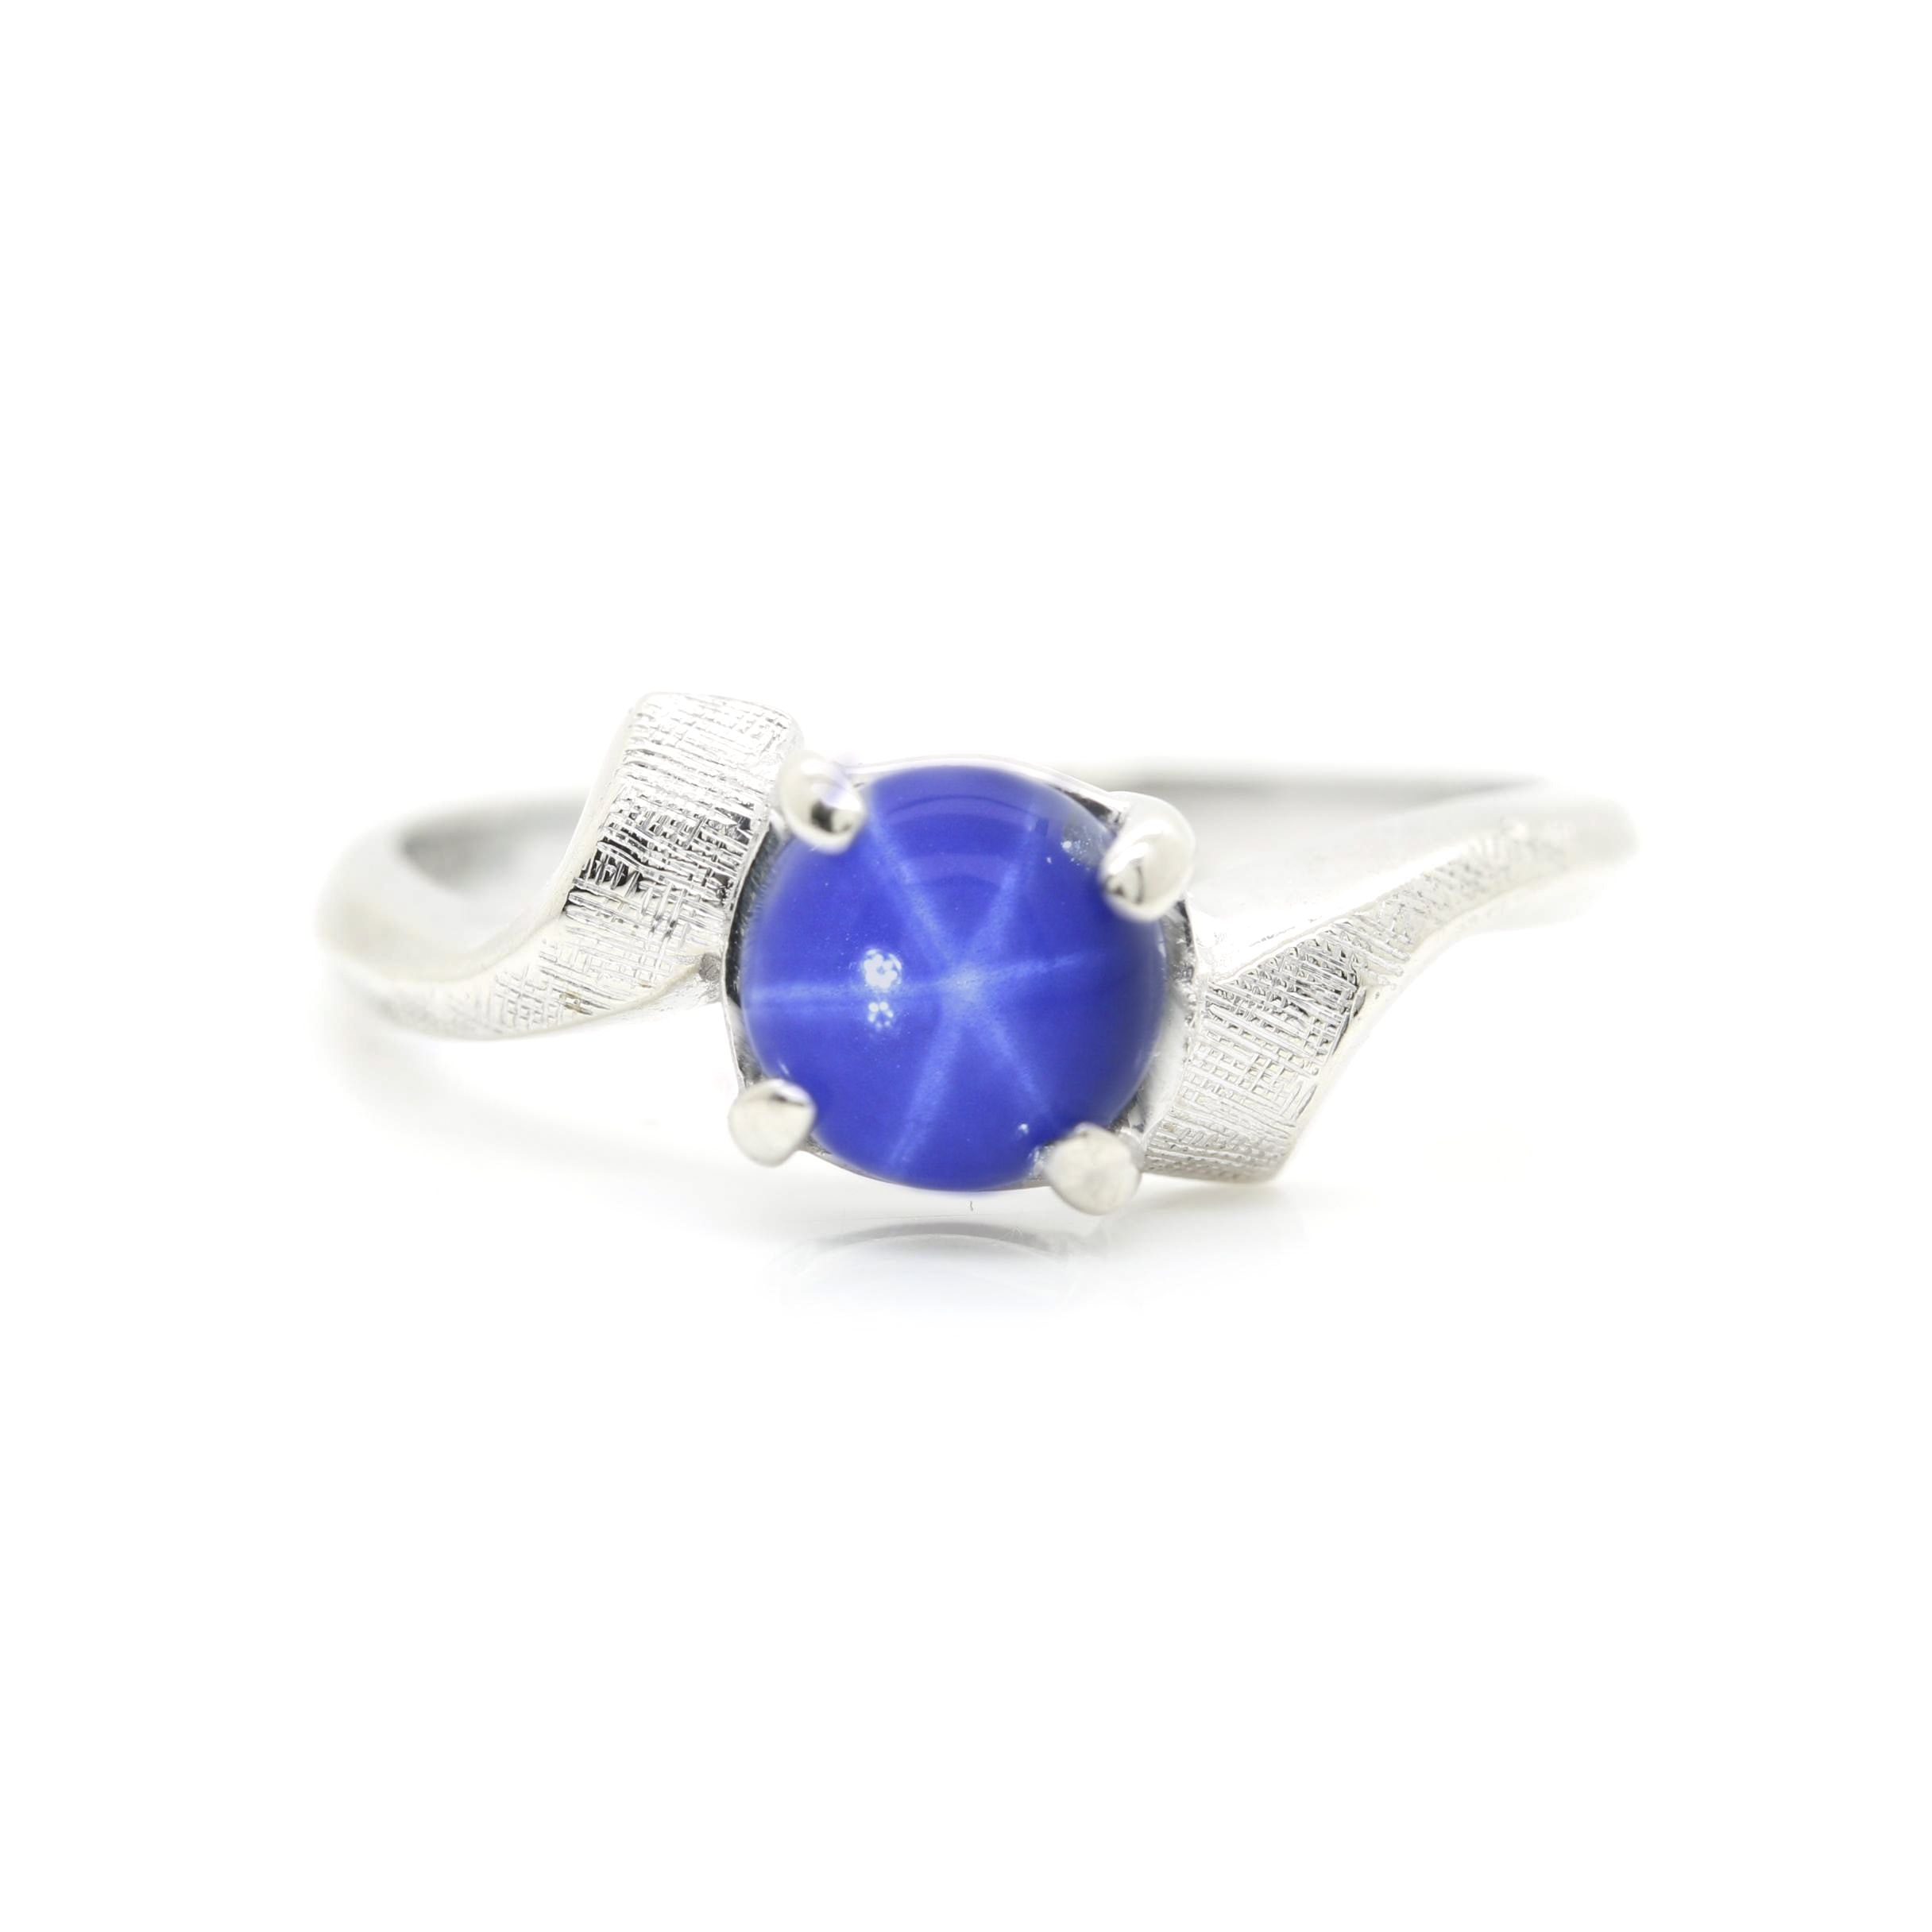 14K White Gold Synthetic Star Sapphire Ring